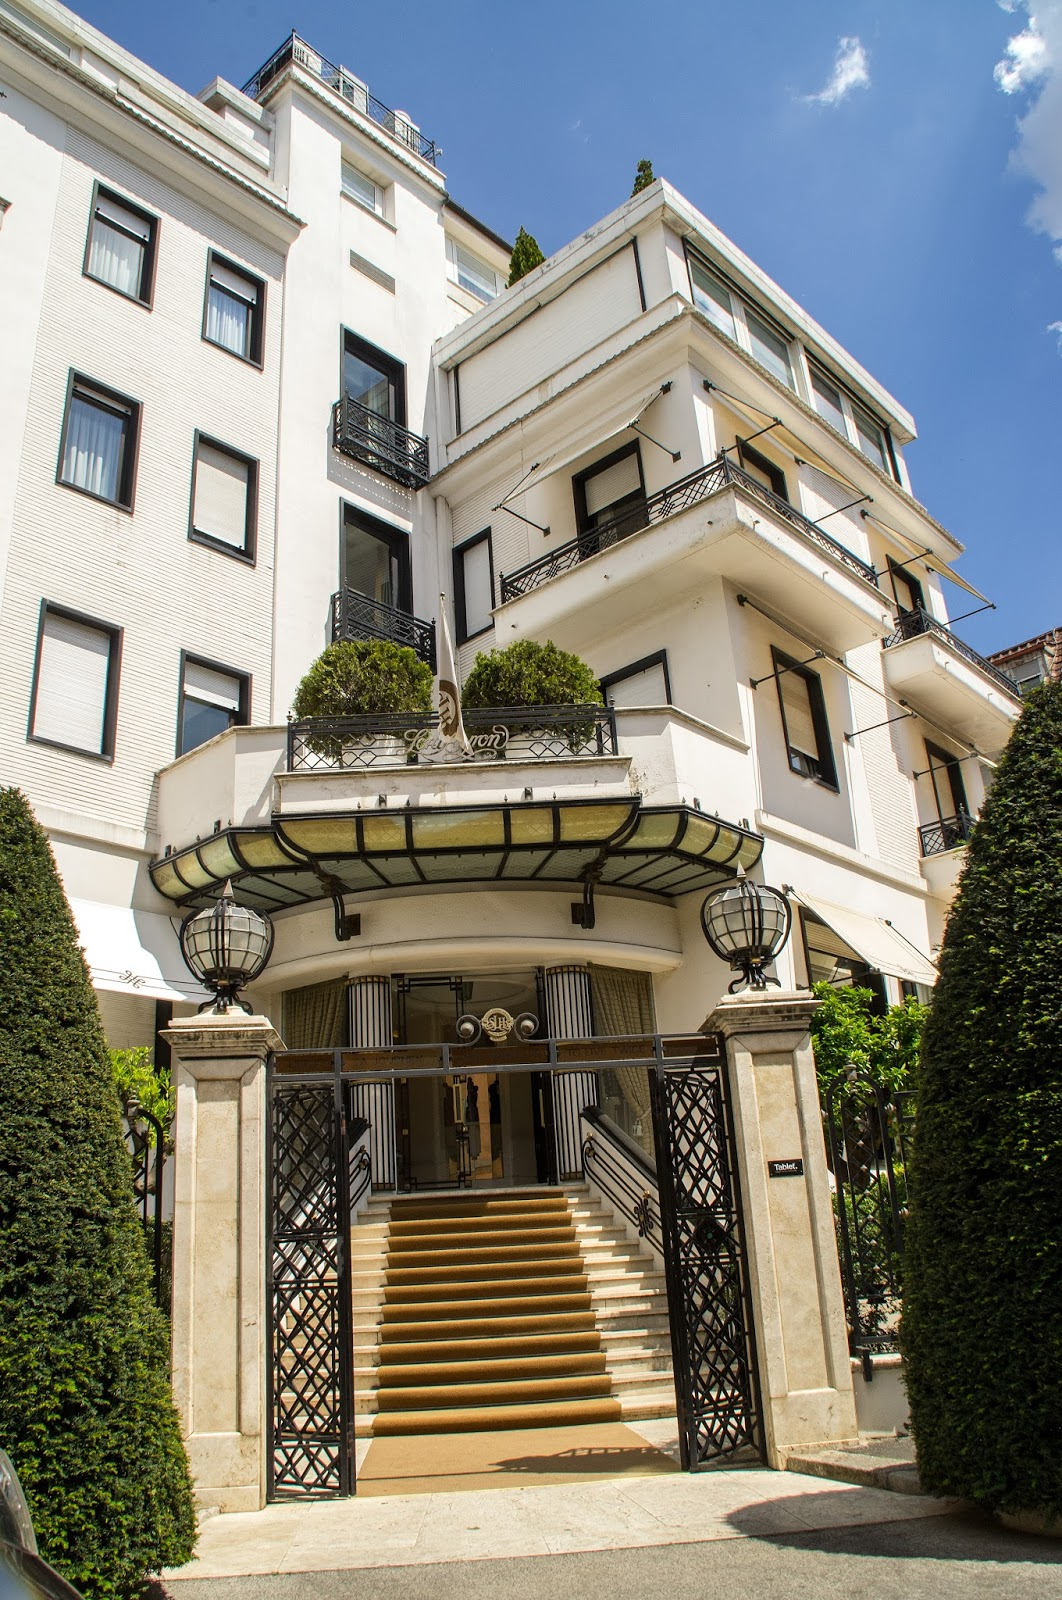 An elegant stay at hotel lord byron rome the aussie for Small hotels of the world